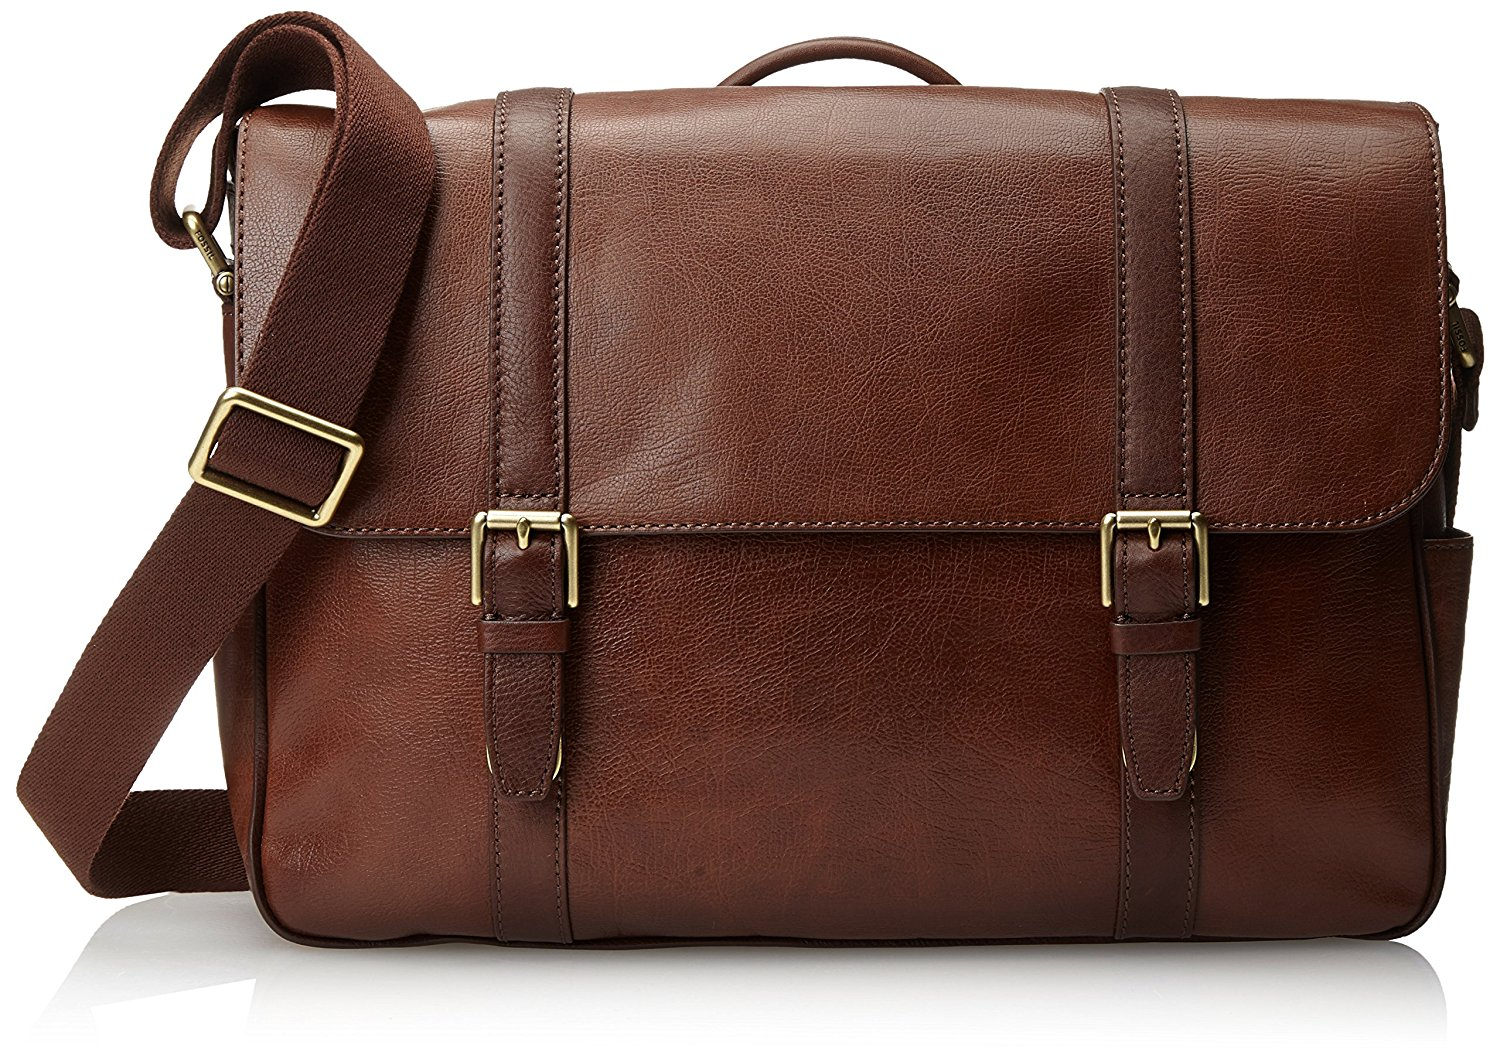 mens bag amazon.com: fossil menu0027s estate saffiano leather east-west messenger bag,  cognac: shoes tdbnist